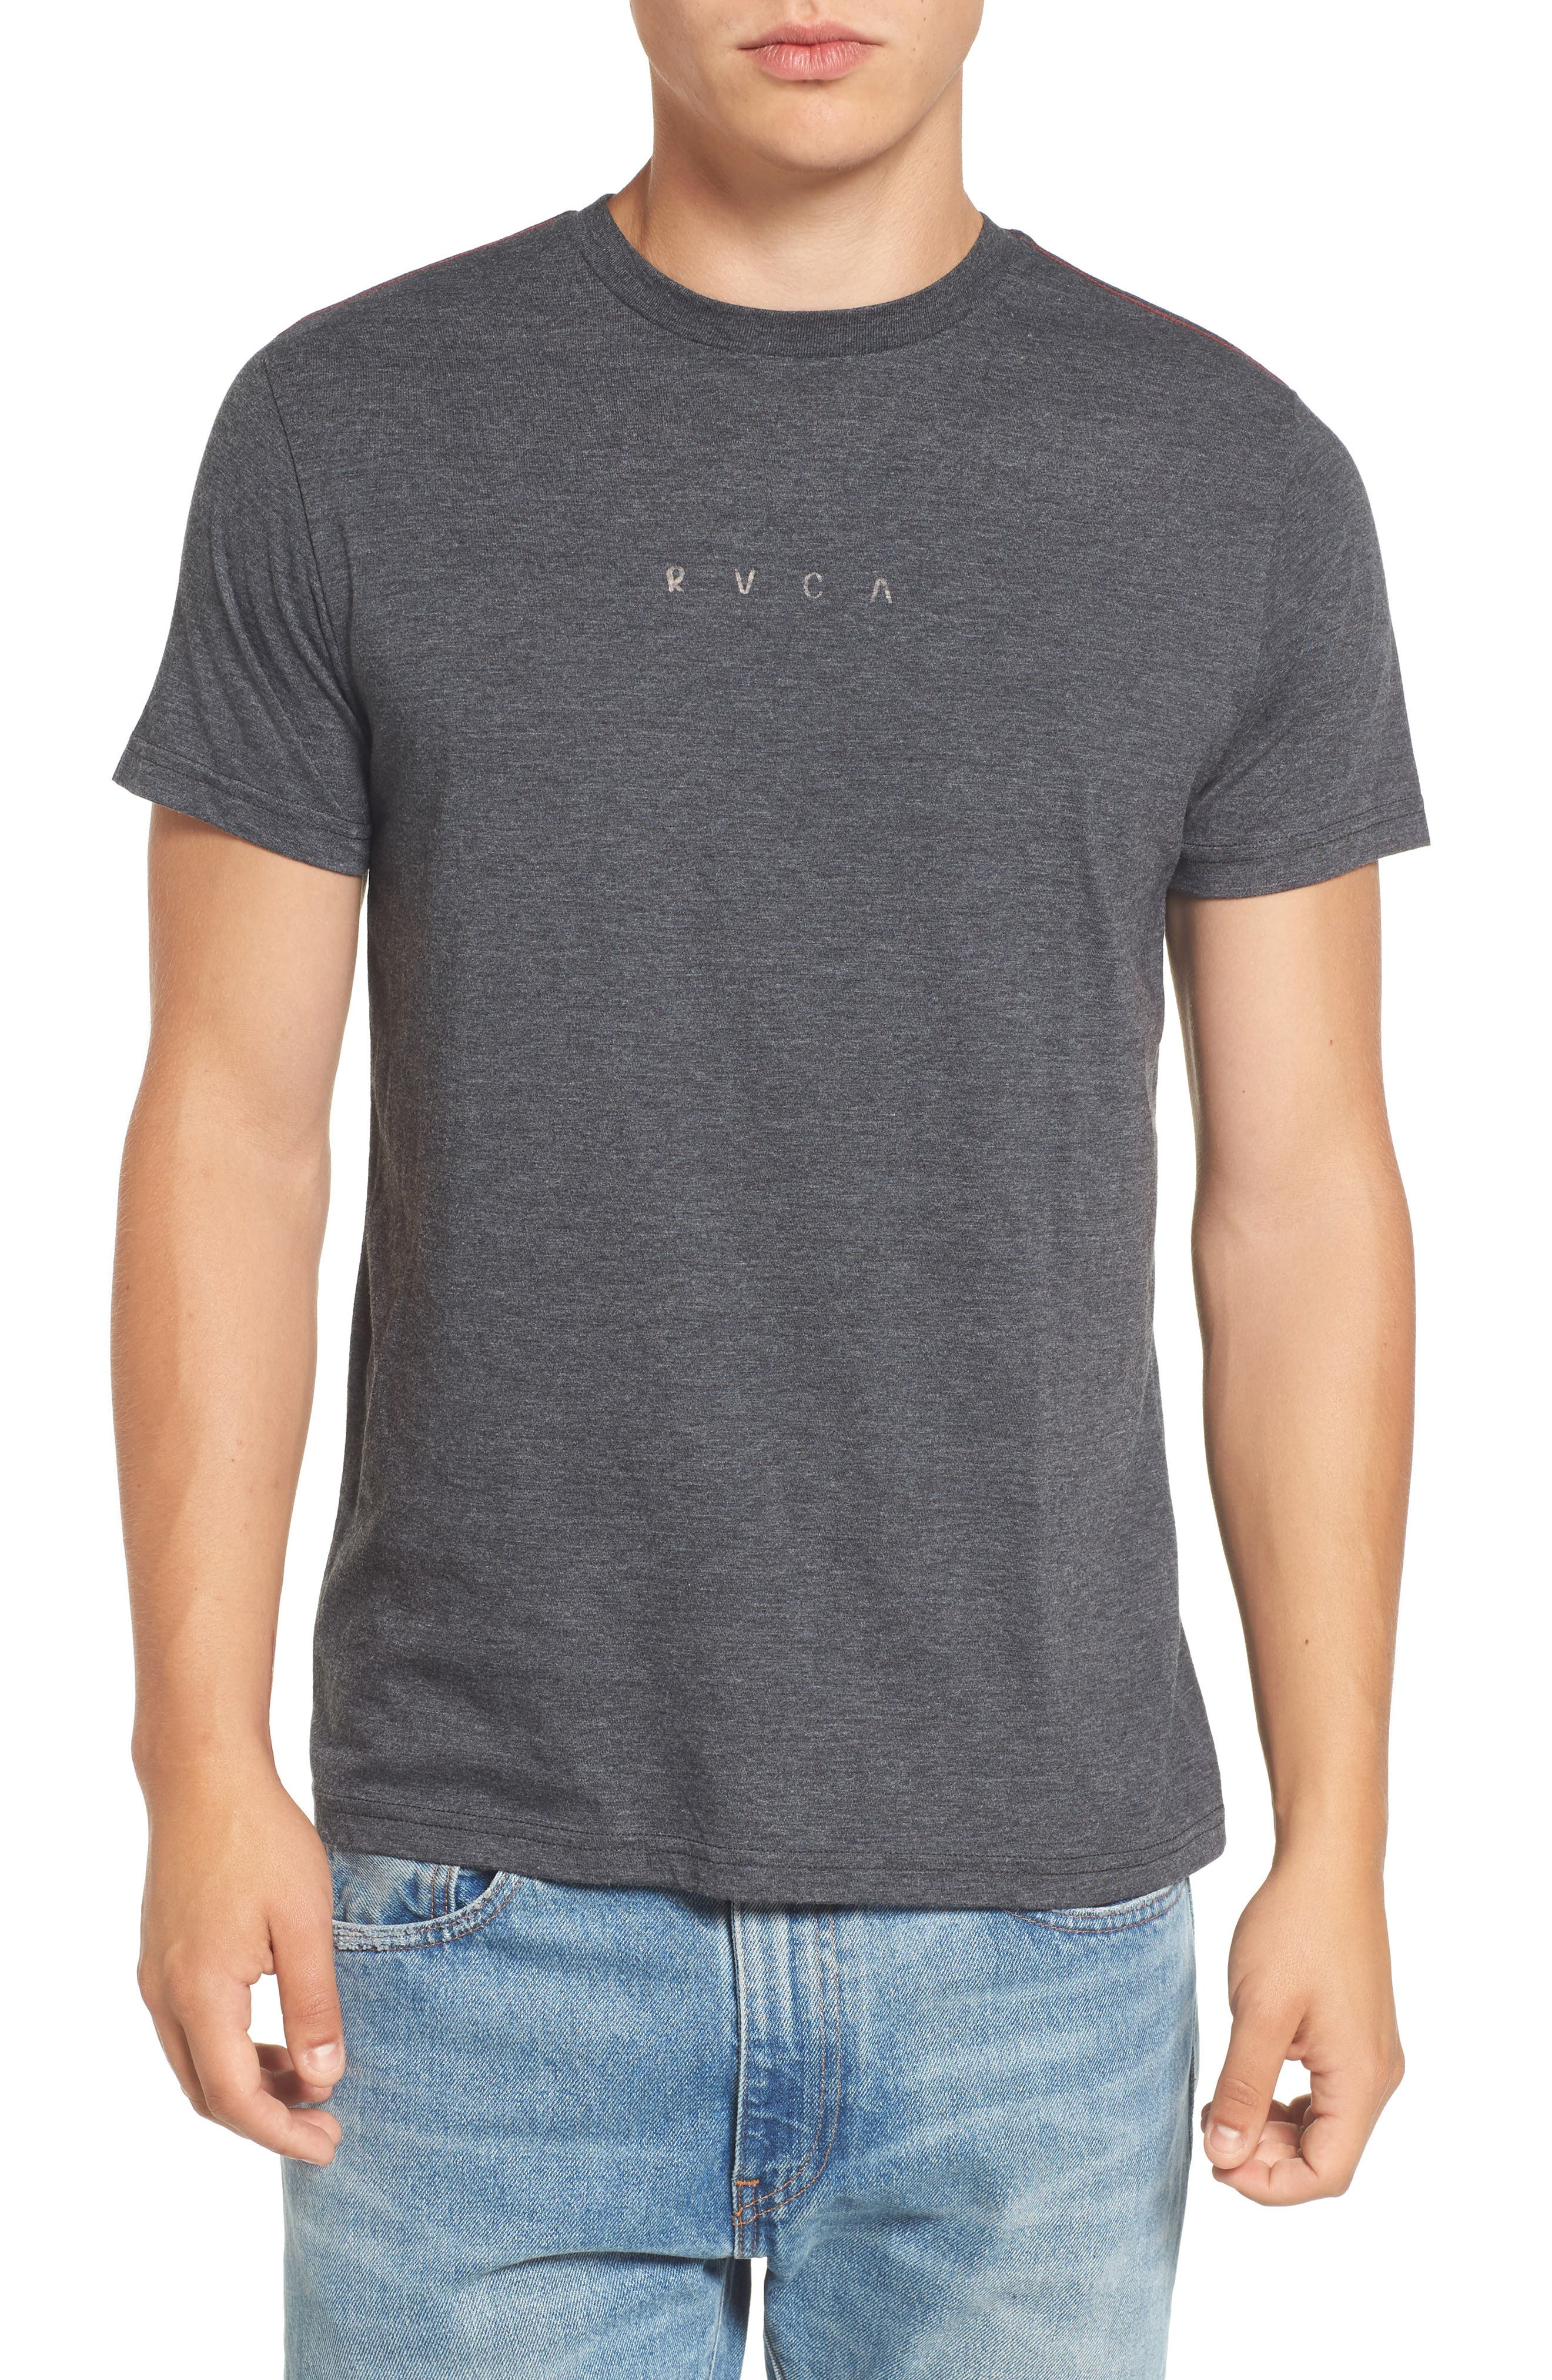 Main Image - RVCA Snooze Cloud Graphic T-Shirt